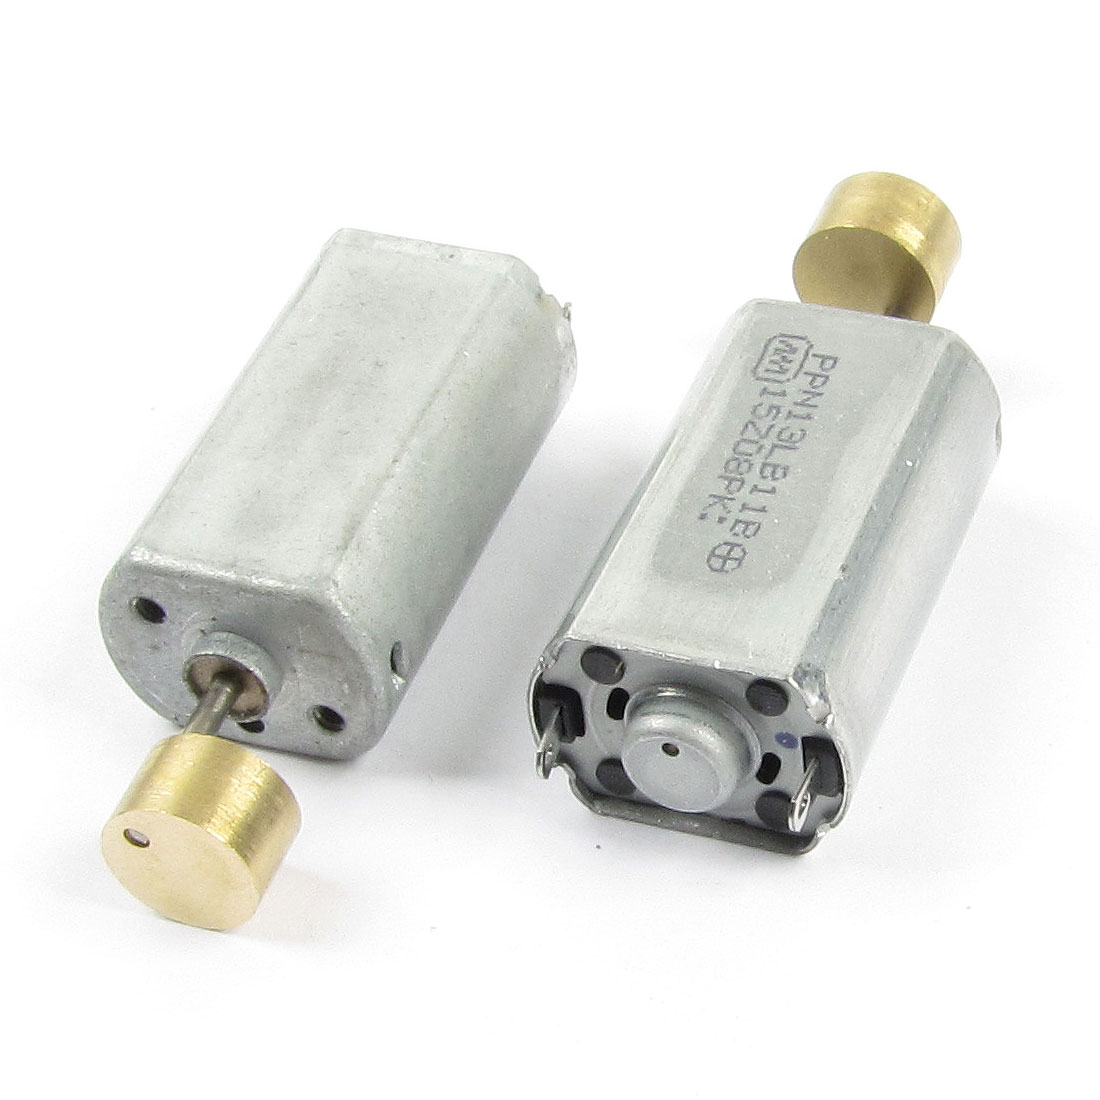 DC 12V 16000RPM 2 Terminals Electric Vibration Motor 2pcs